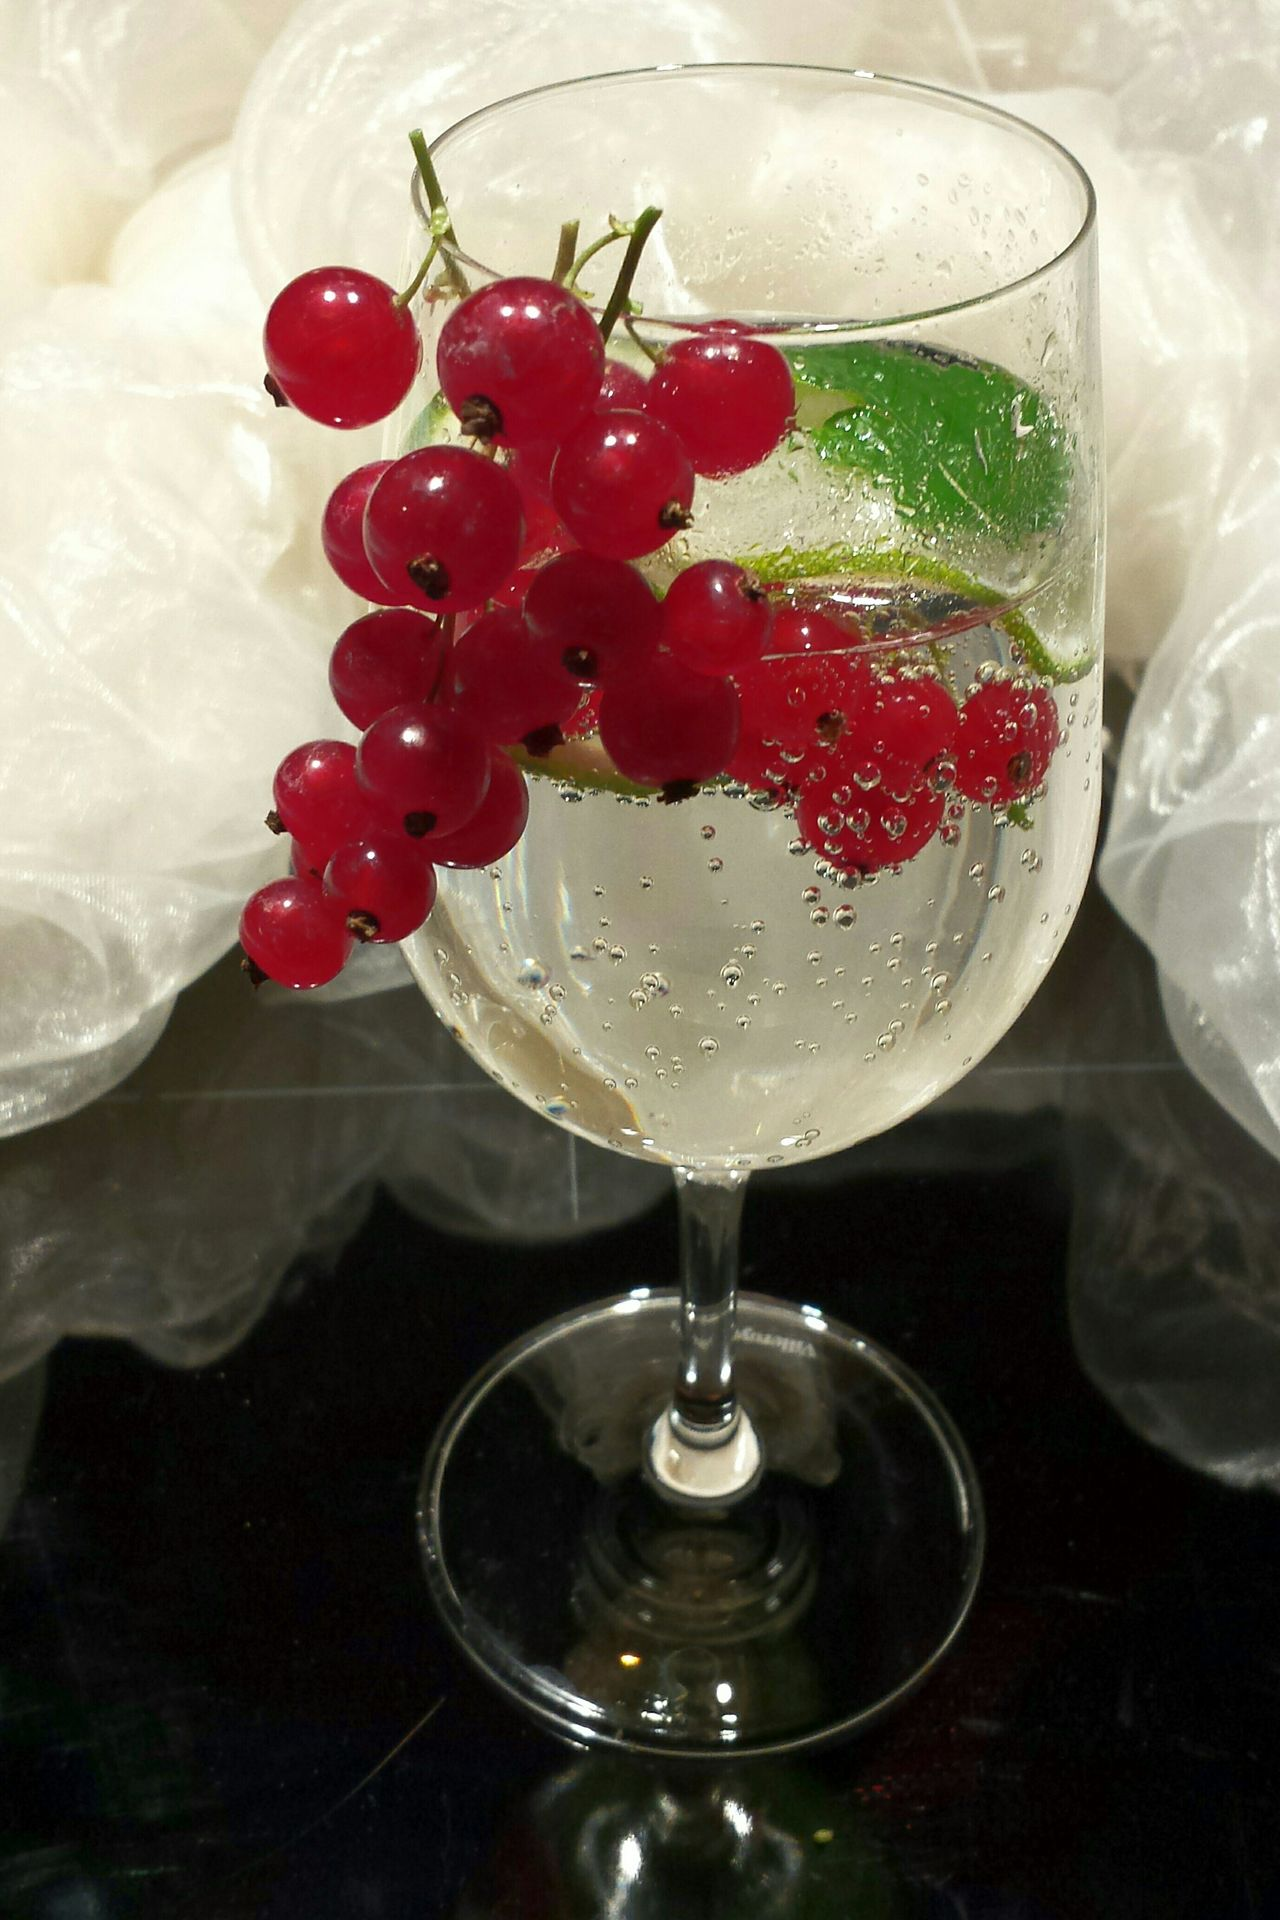 Visual Feast Yummy Drink Appetitlich Wine Glass White Chiffon Black Background Prickelnder Drink Minze Limettenscheibe Cucumber Slices Kohlensäureperlen Sprudel Rote Johannisbeeren Johannisbeeren Red Berries Drink No People Close Up Close-up Freshness Sprudelwasser Sprudelndes Wasser